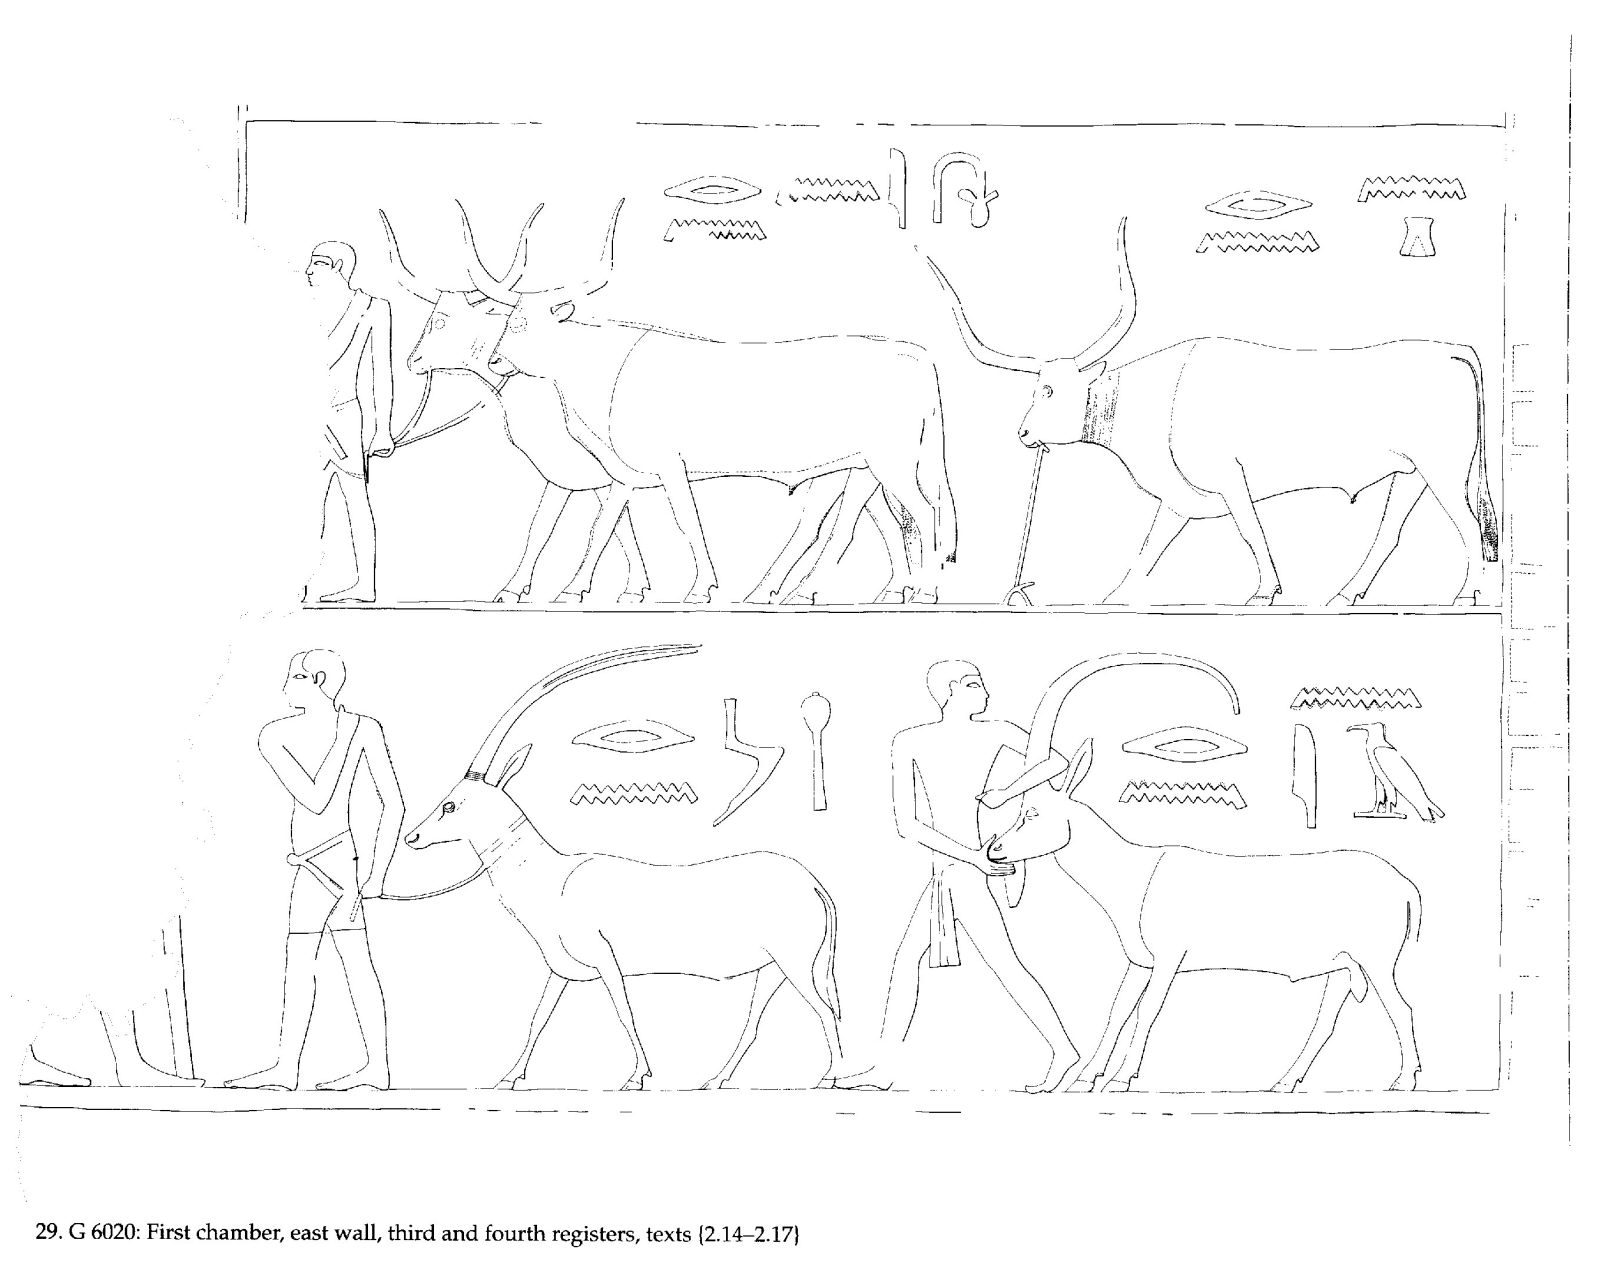 Drawings: G 6020: relief from first chamber, E wall, third and fourth registers